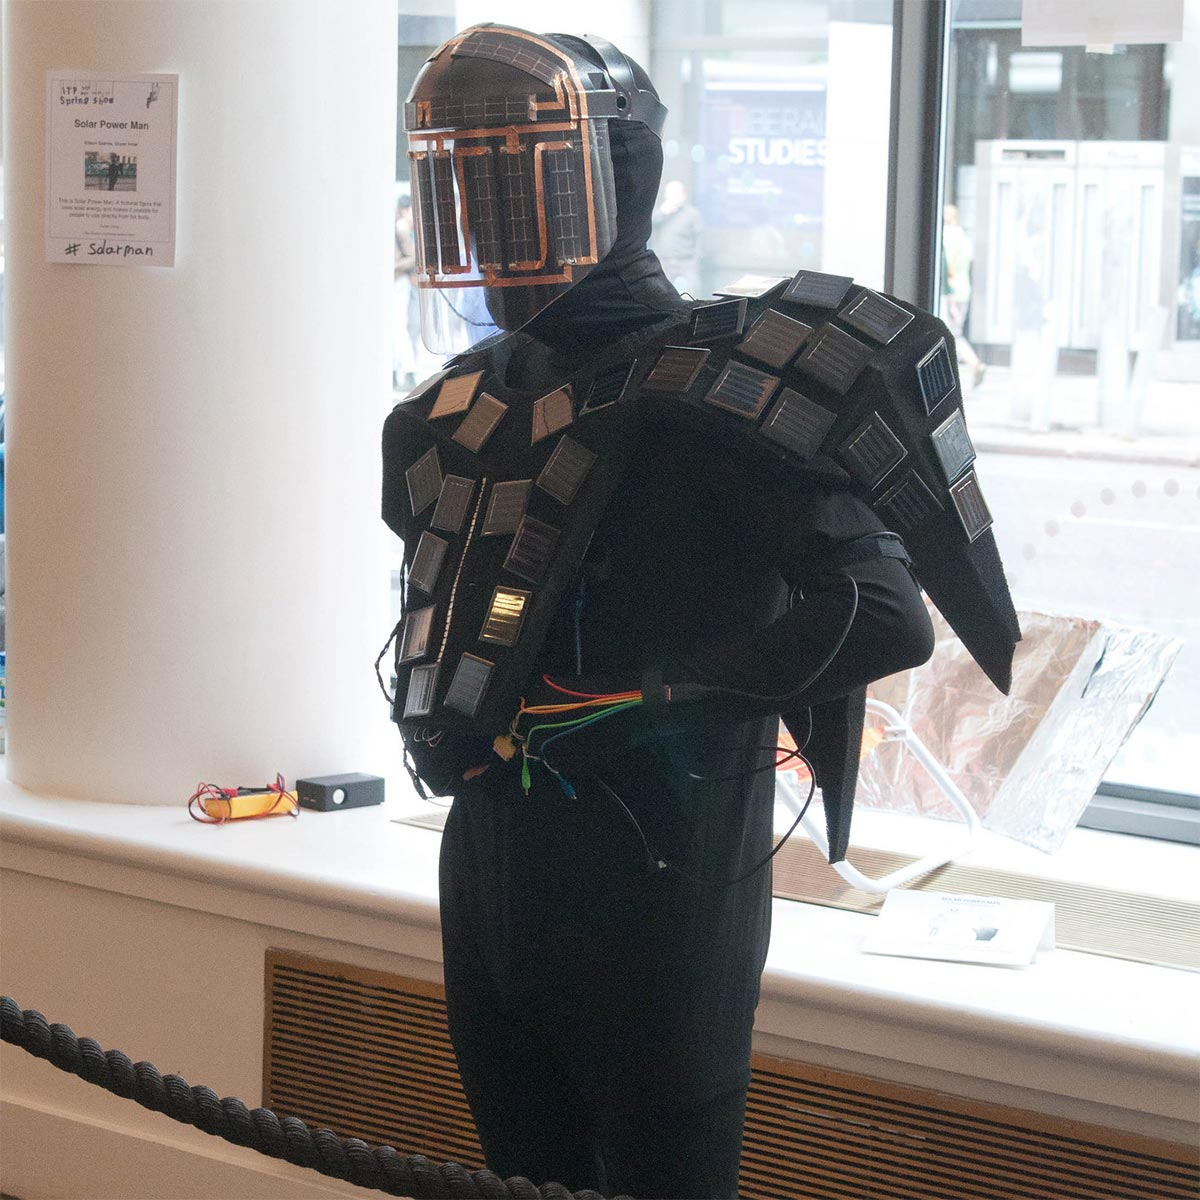 a person dressed with a mask and wings covered in solar panels